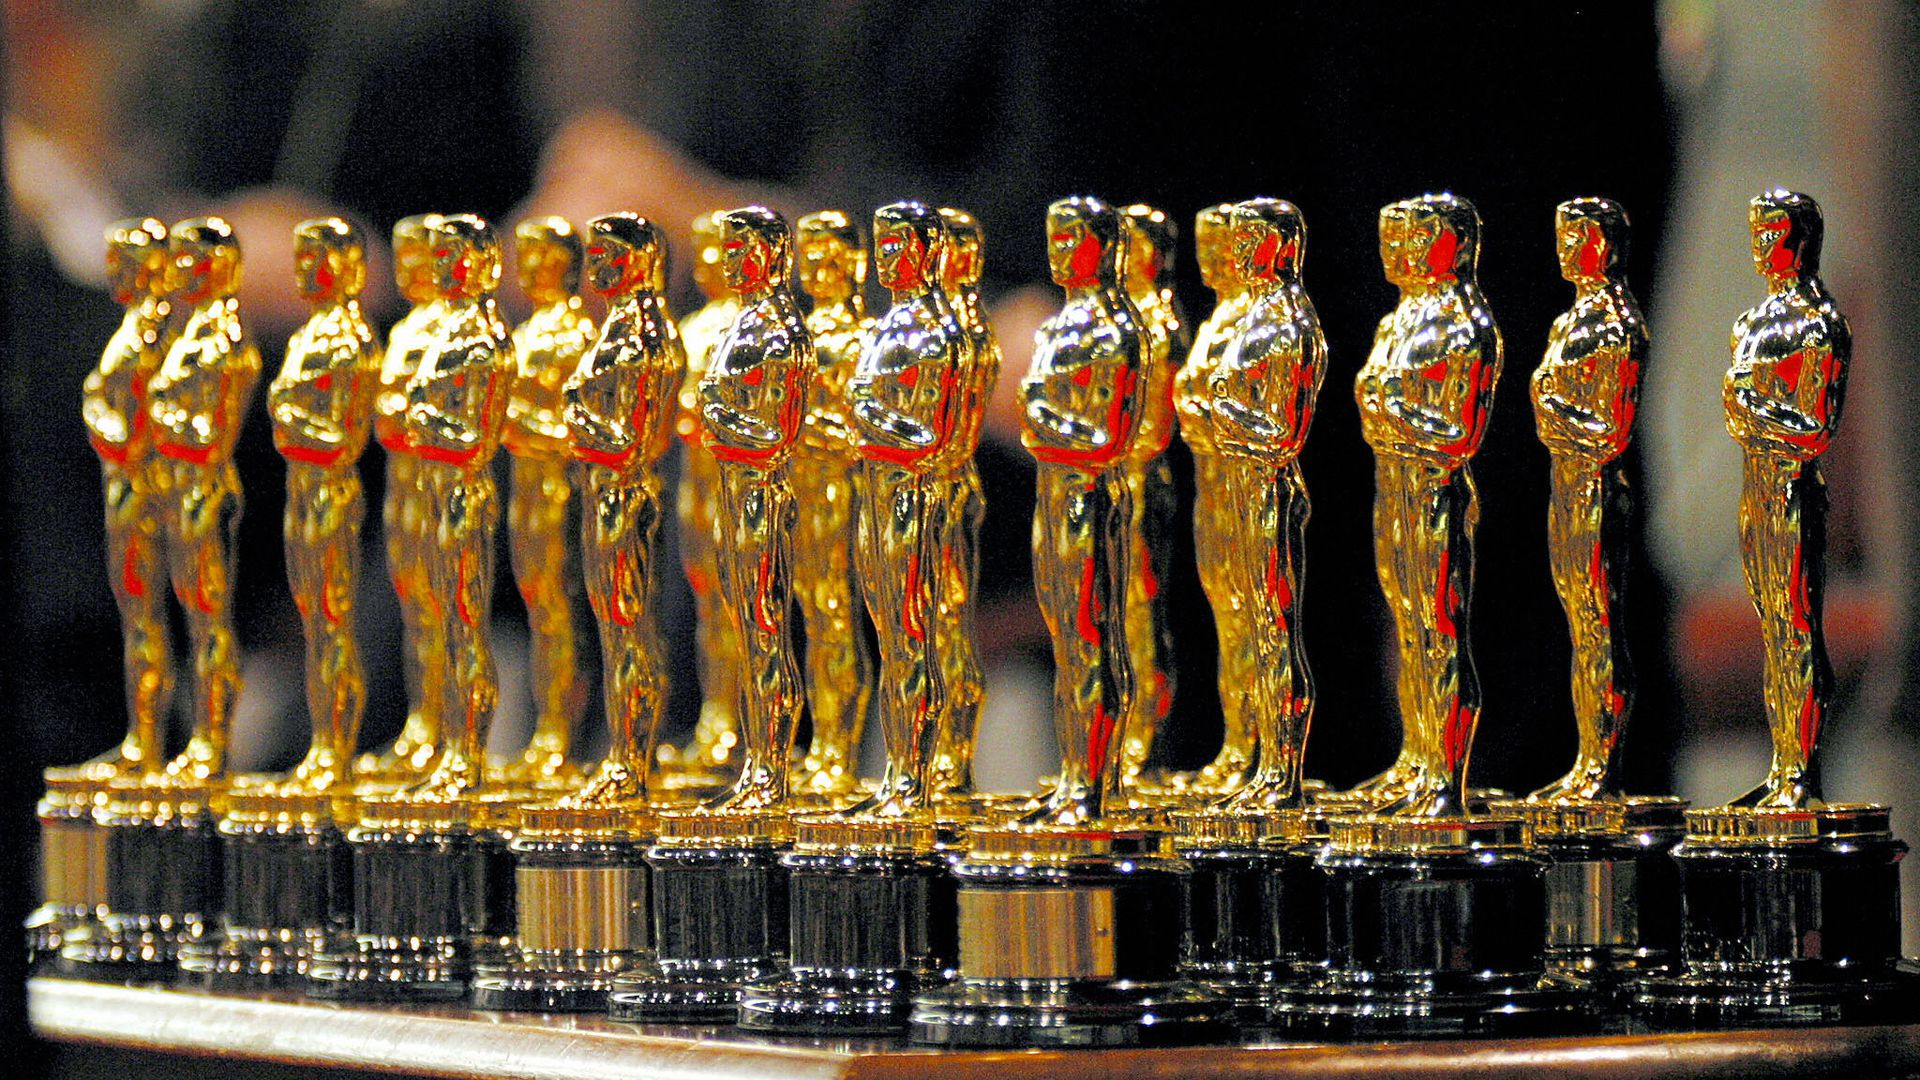 Oscar Nominations Scorecard by Film and Studio